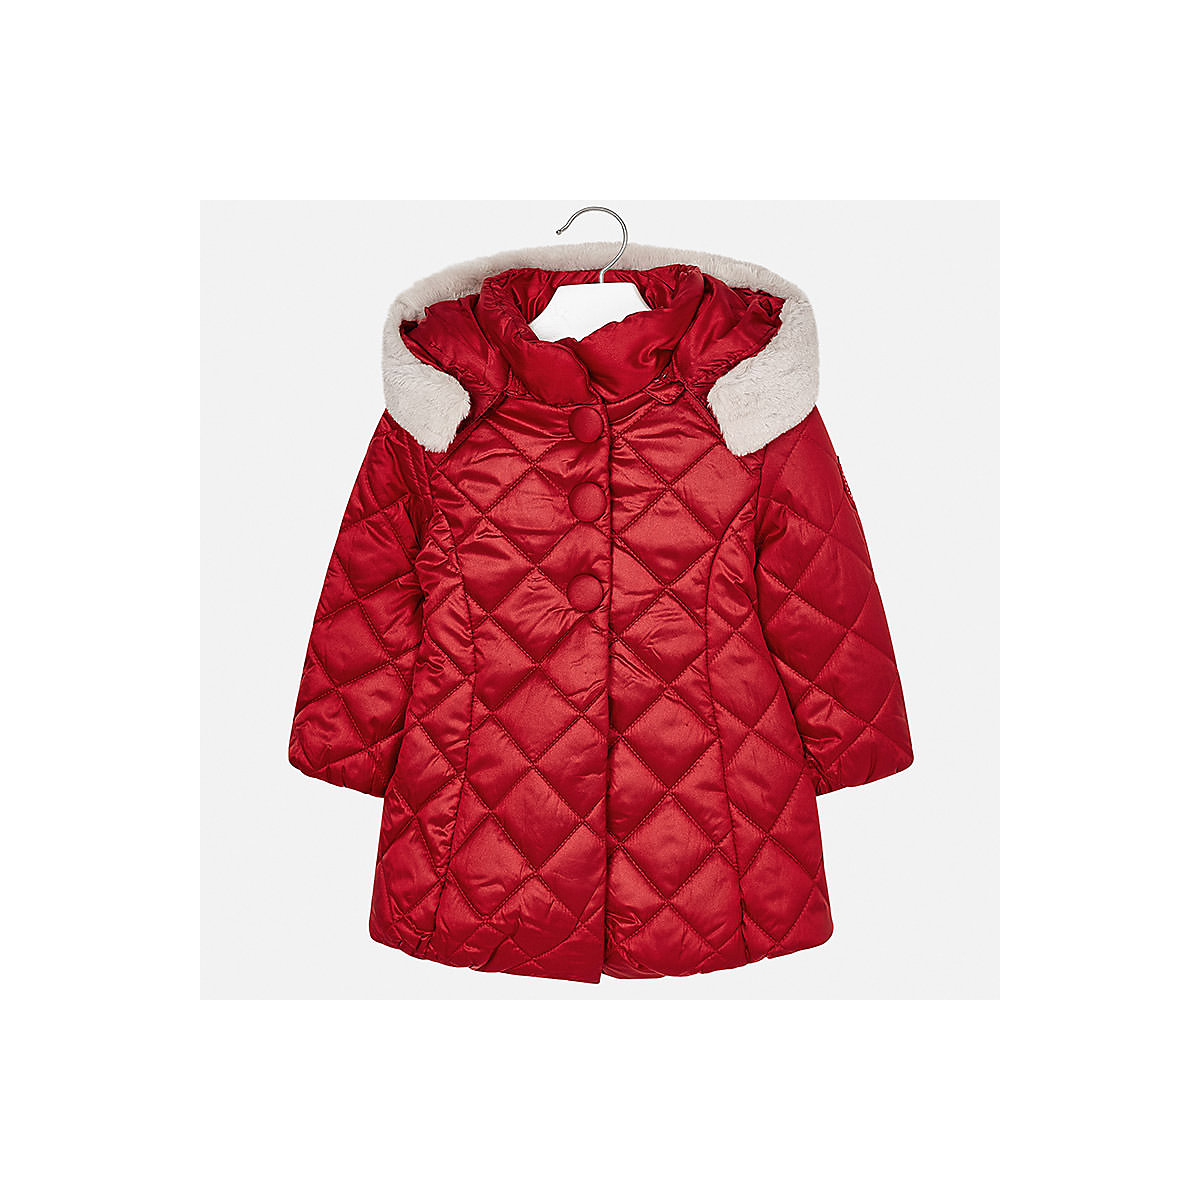 MAYORAL Jackets & Coats 8849537 jacket for girl boy coat baby clothes children clothing outwear boys girls